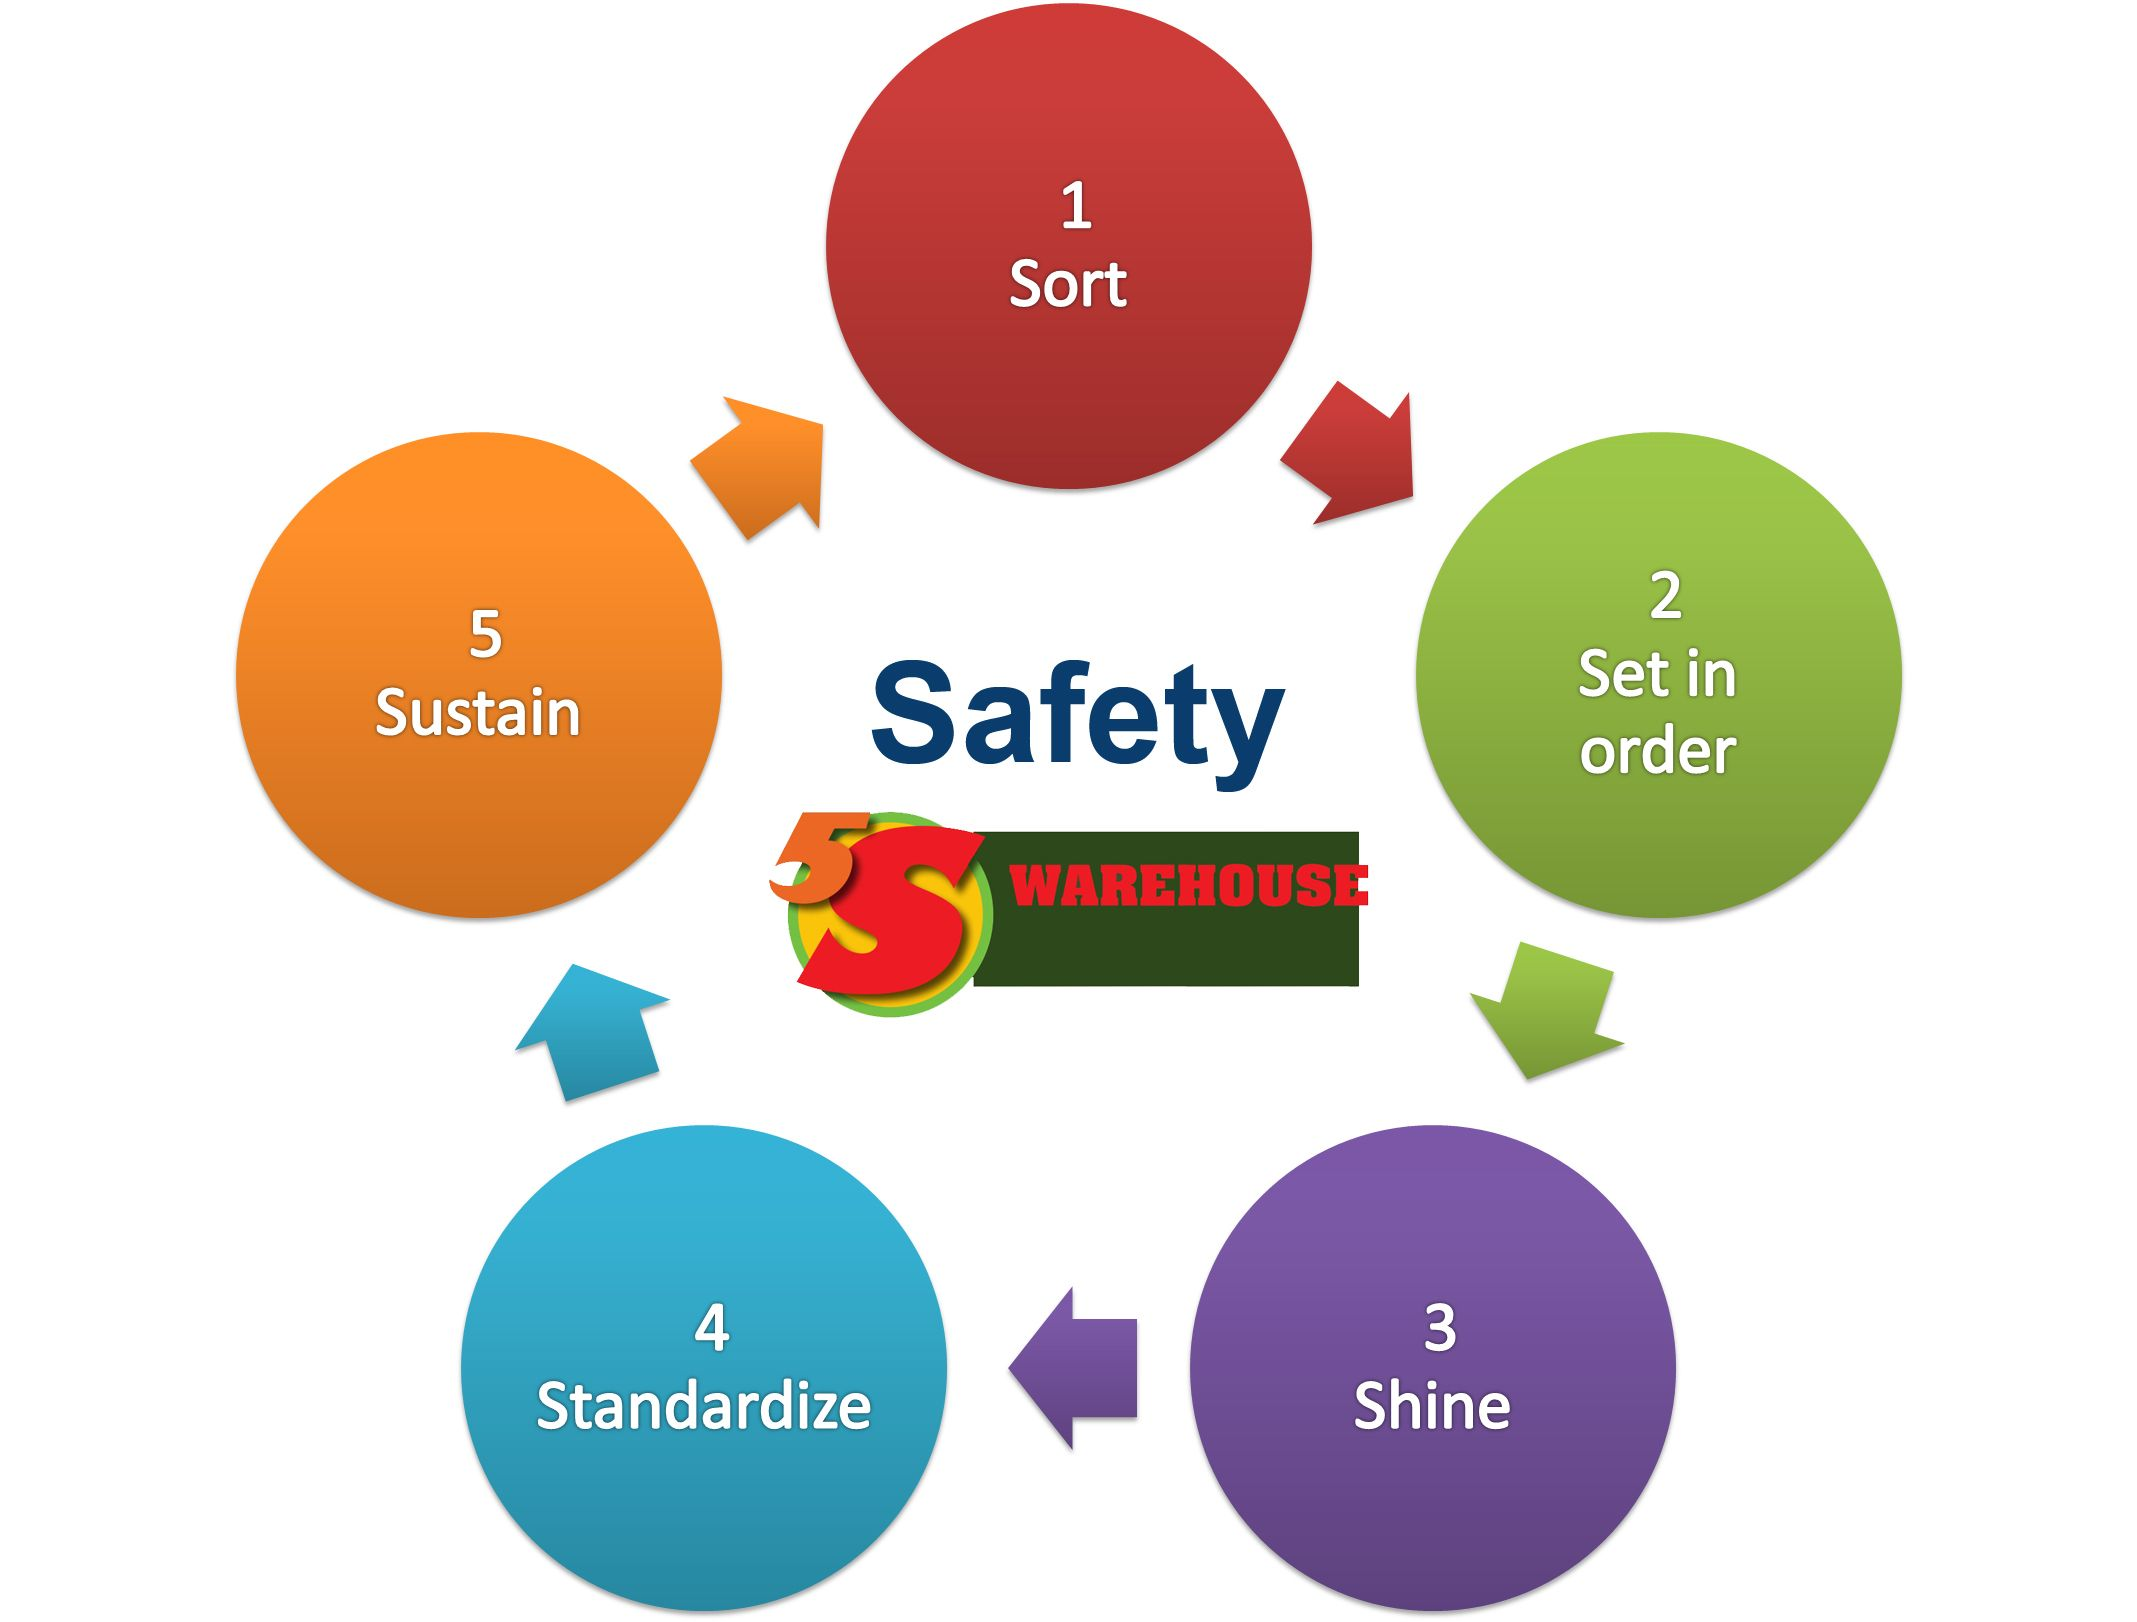 The 5s Plus Safety Methodology